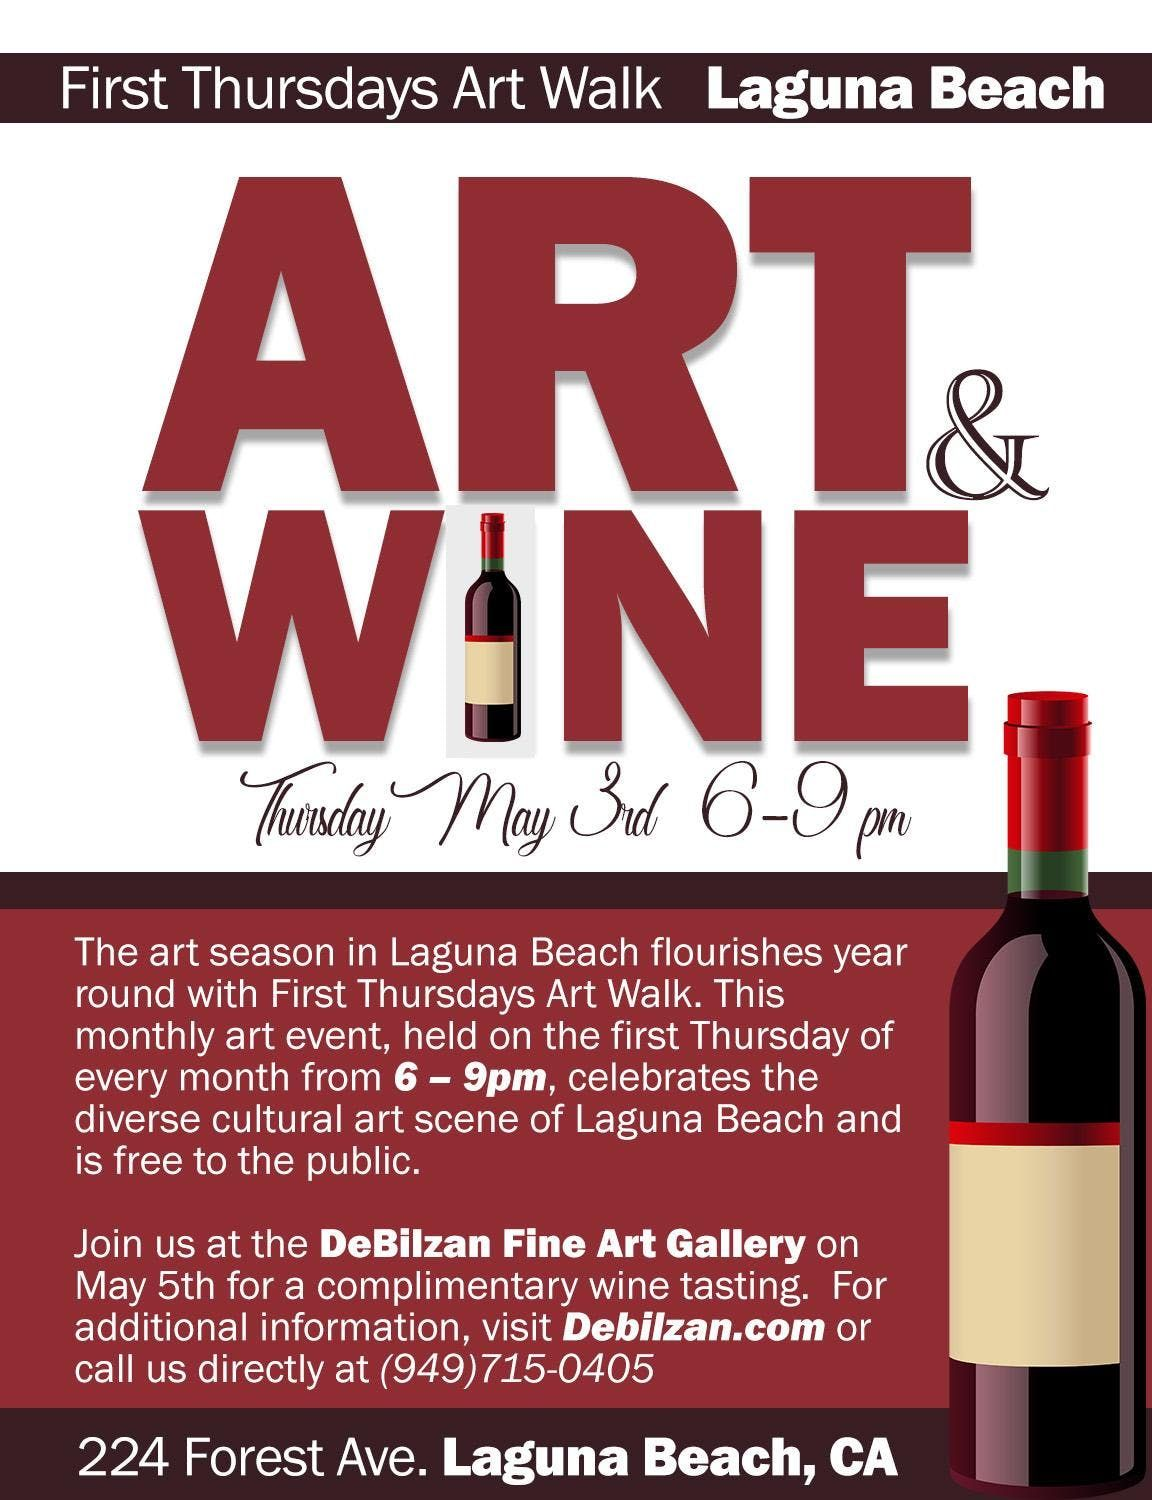 Join Us At The Debilzan Fine Art Gallery In Laguna Beach On Thursday May 3rd From 6 9 Pm For A Complimentary Wine Tasting Partints Must Be 21 Years Or